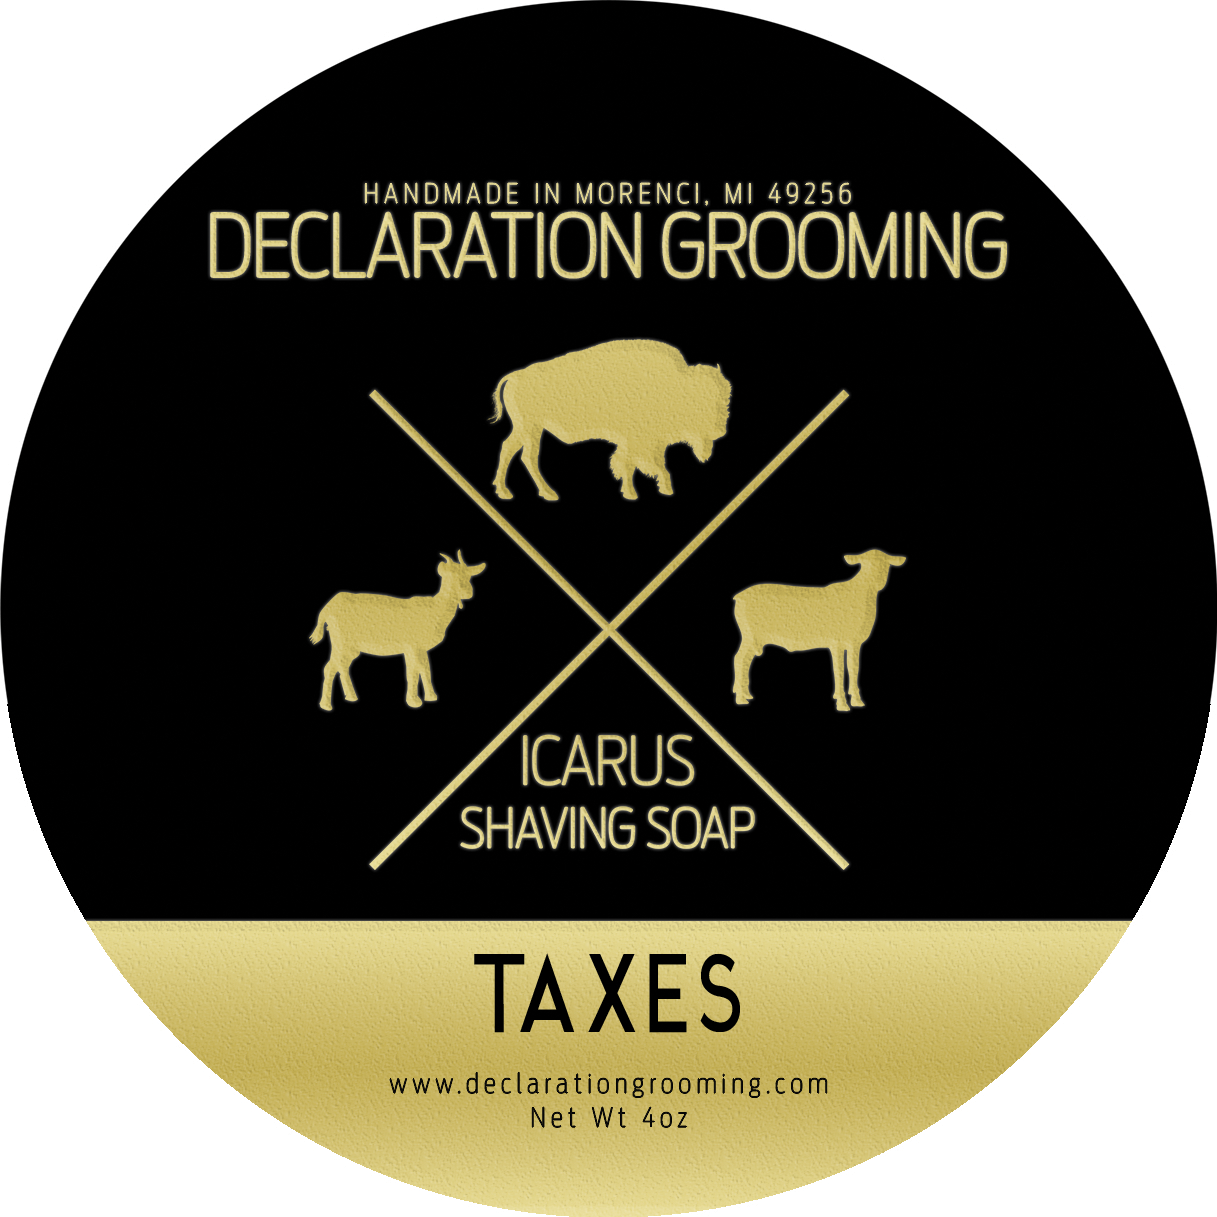 Declaration Grooming - Taxes - Soap image